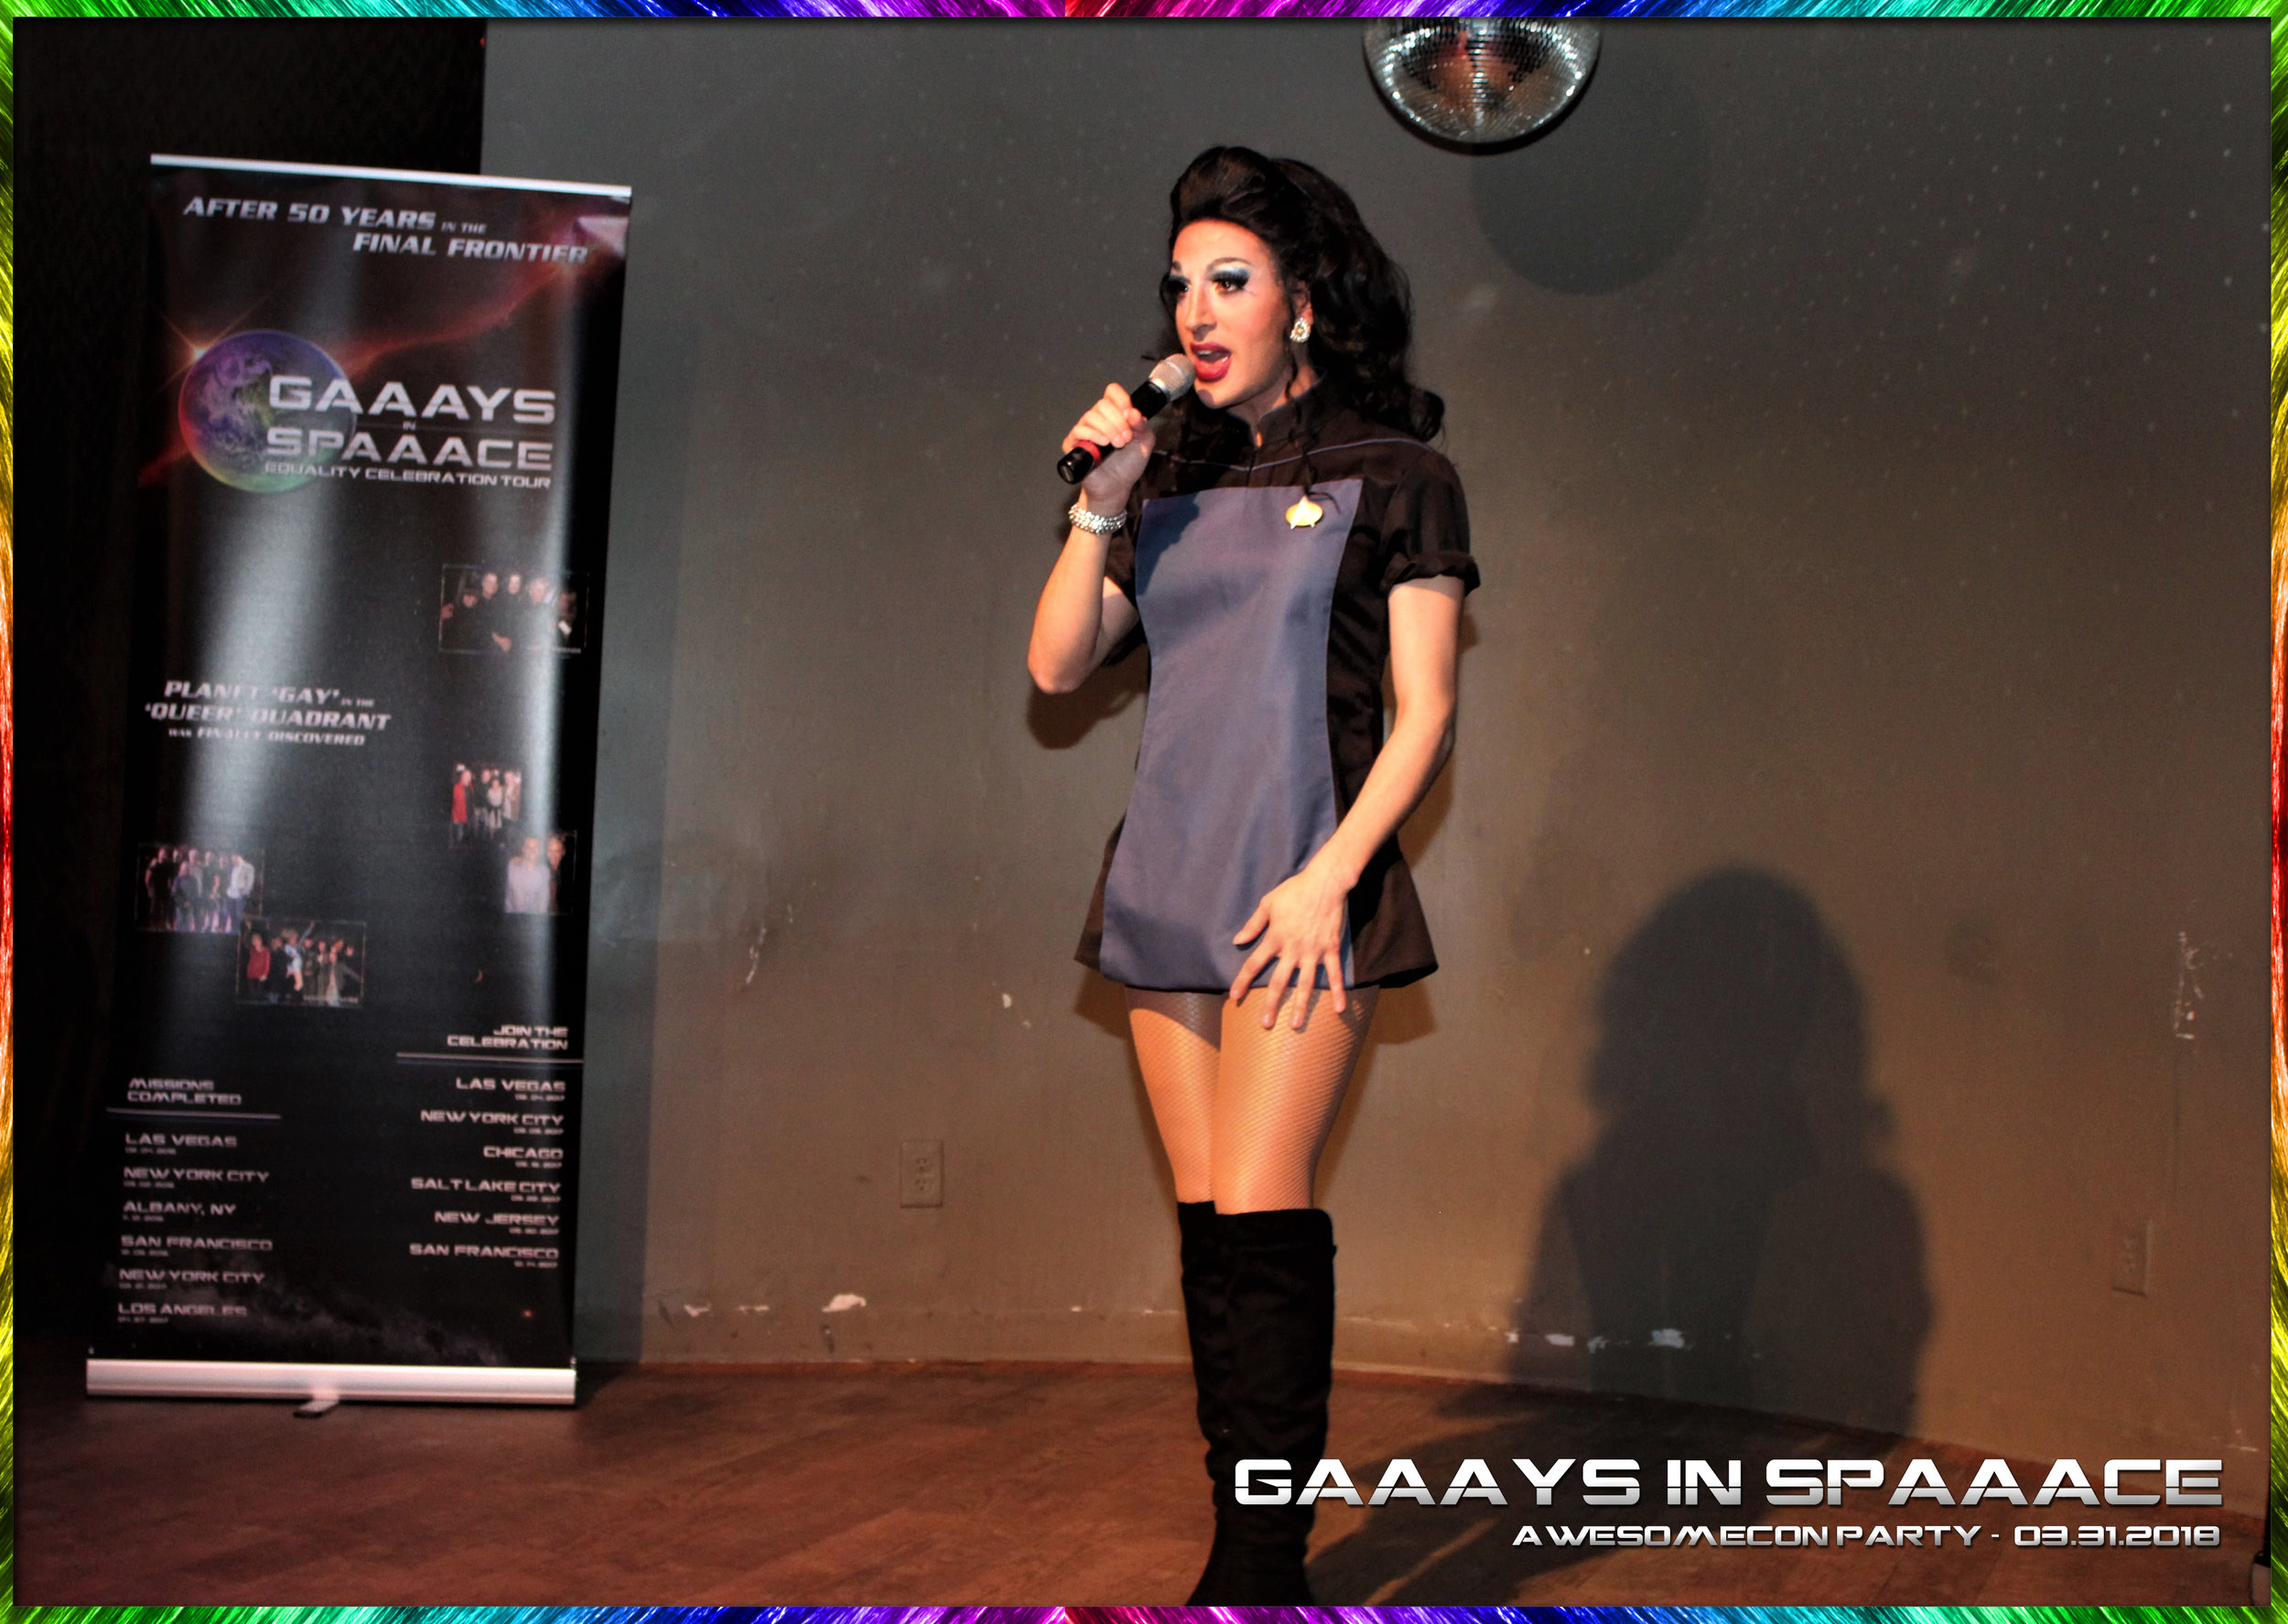 27-GIS-AwesomeConParty-3-31-18-JackieCox-OnStage-1.jpg